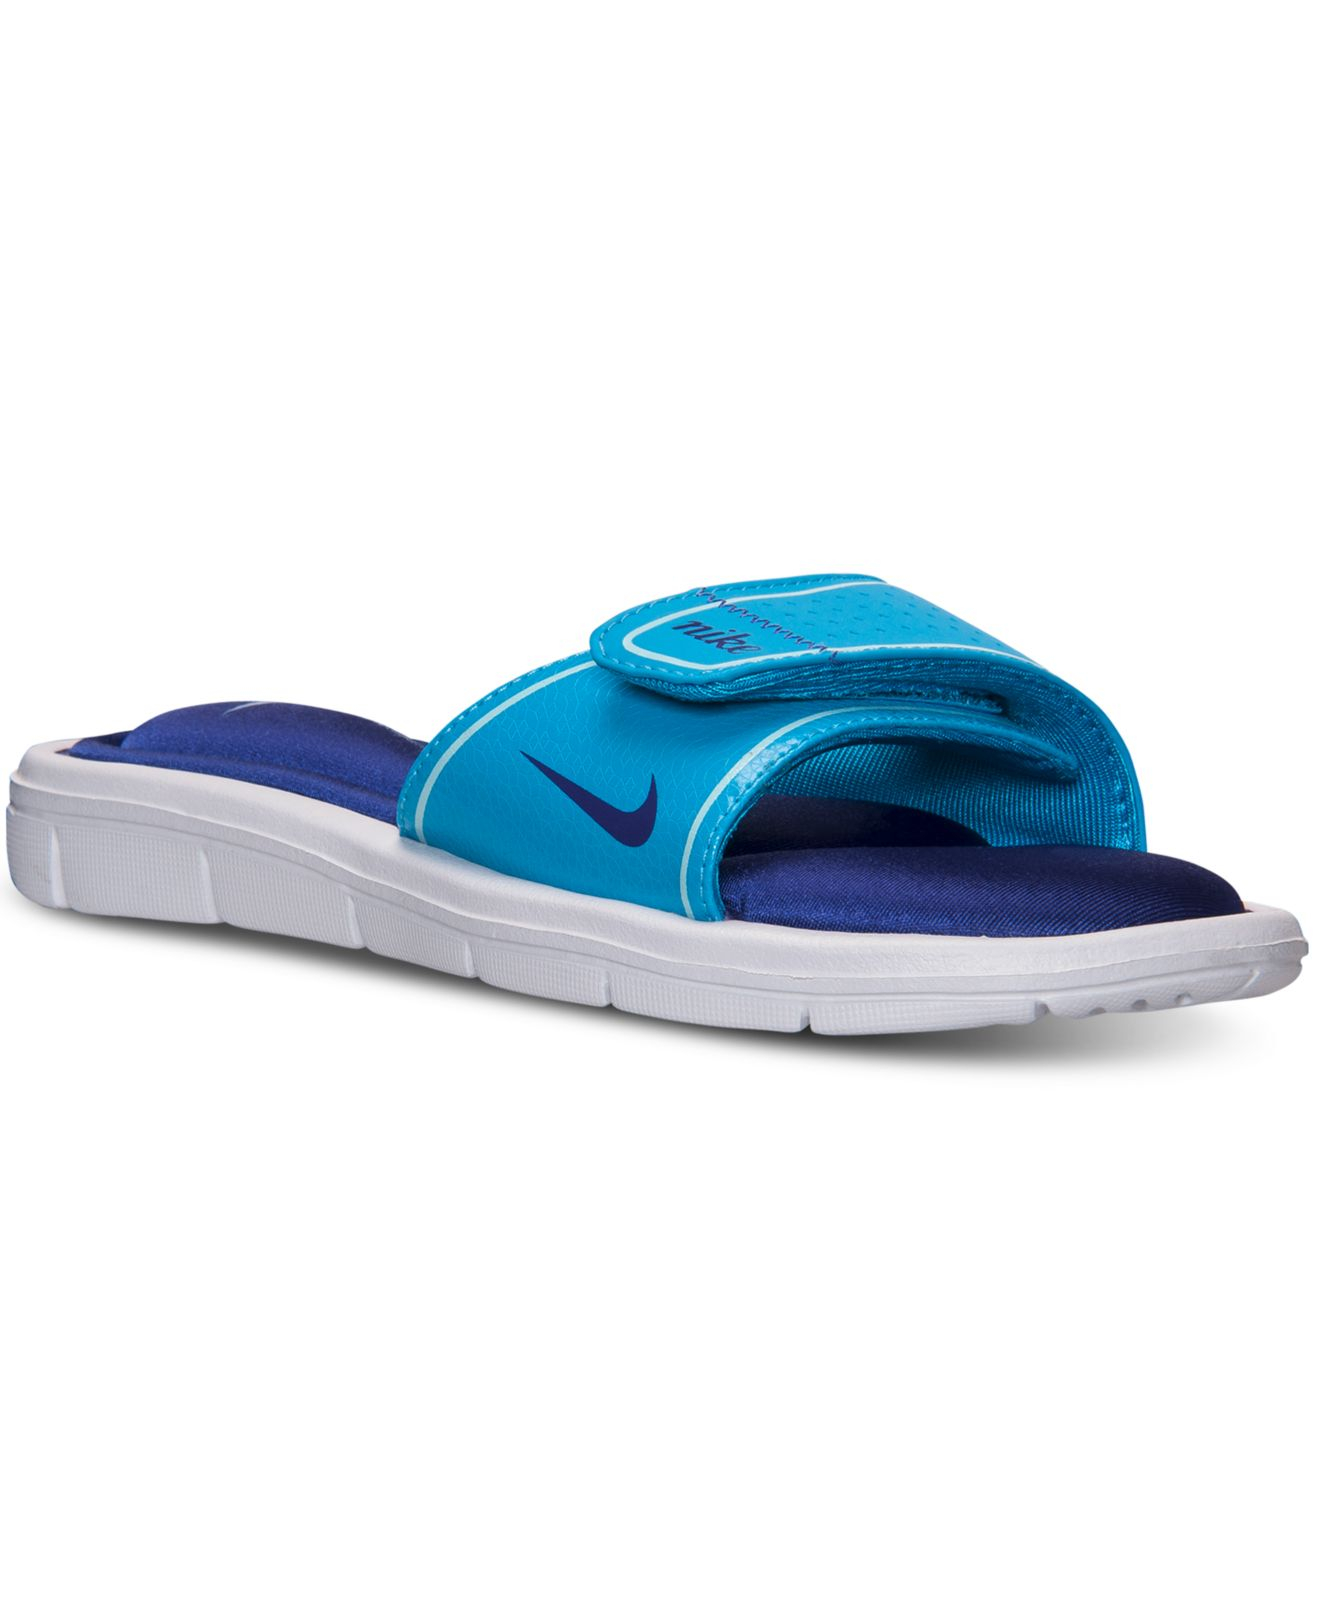 bd5f4b175aba10 Awesome Nike Womens Comfort Slide Sandals Athleisuressshoe. Excellent Nike  Women39s Comfort Slide Be A Good Sport Pinterest